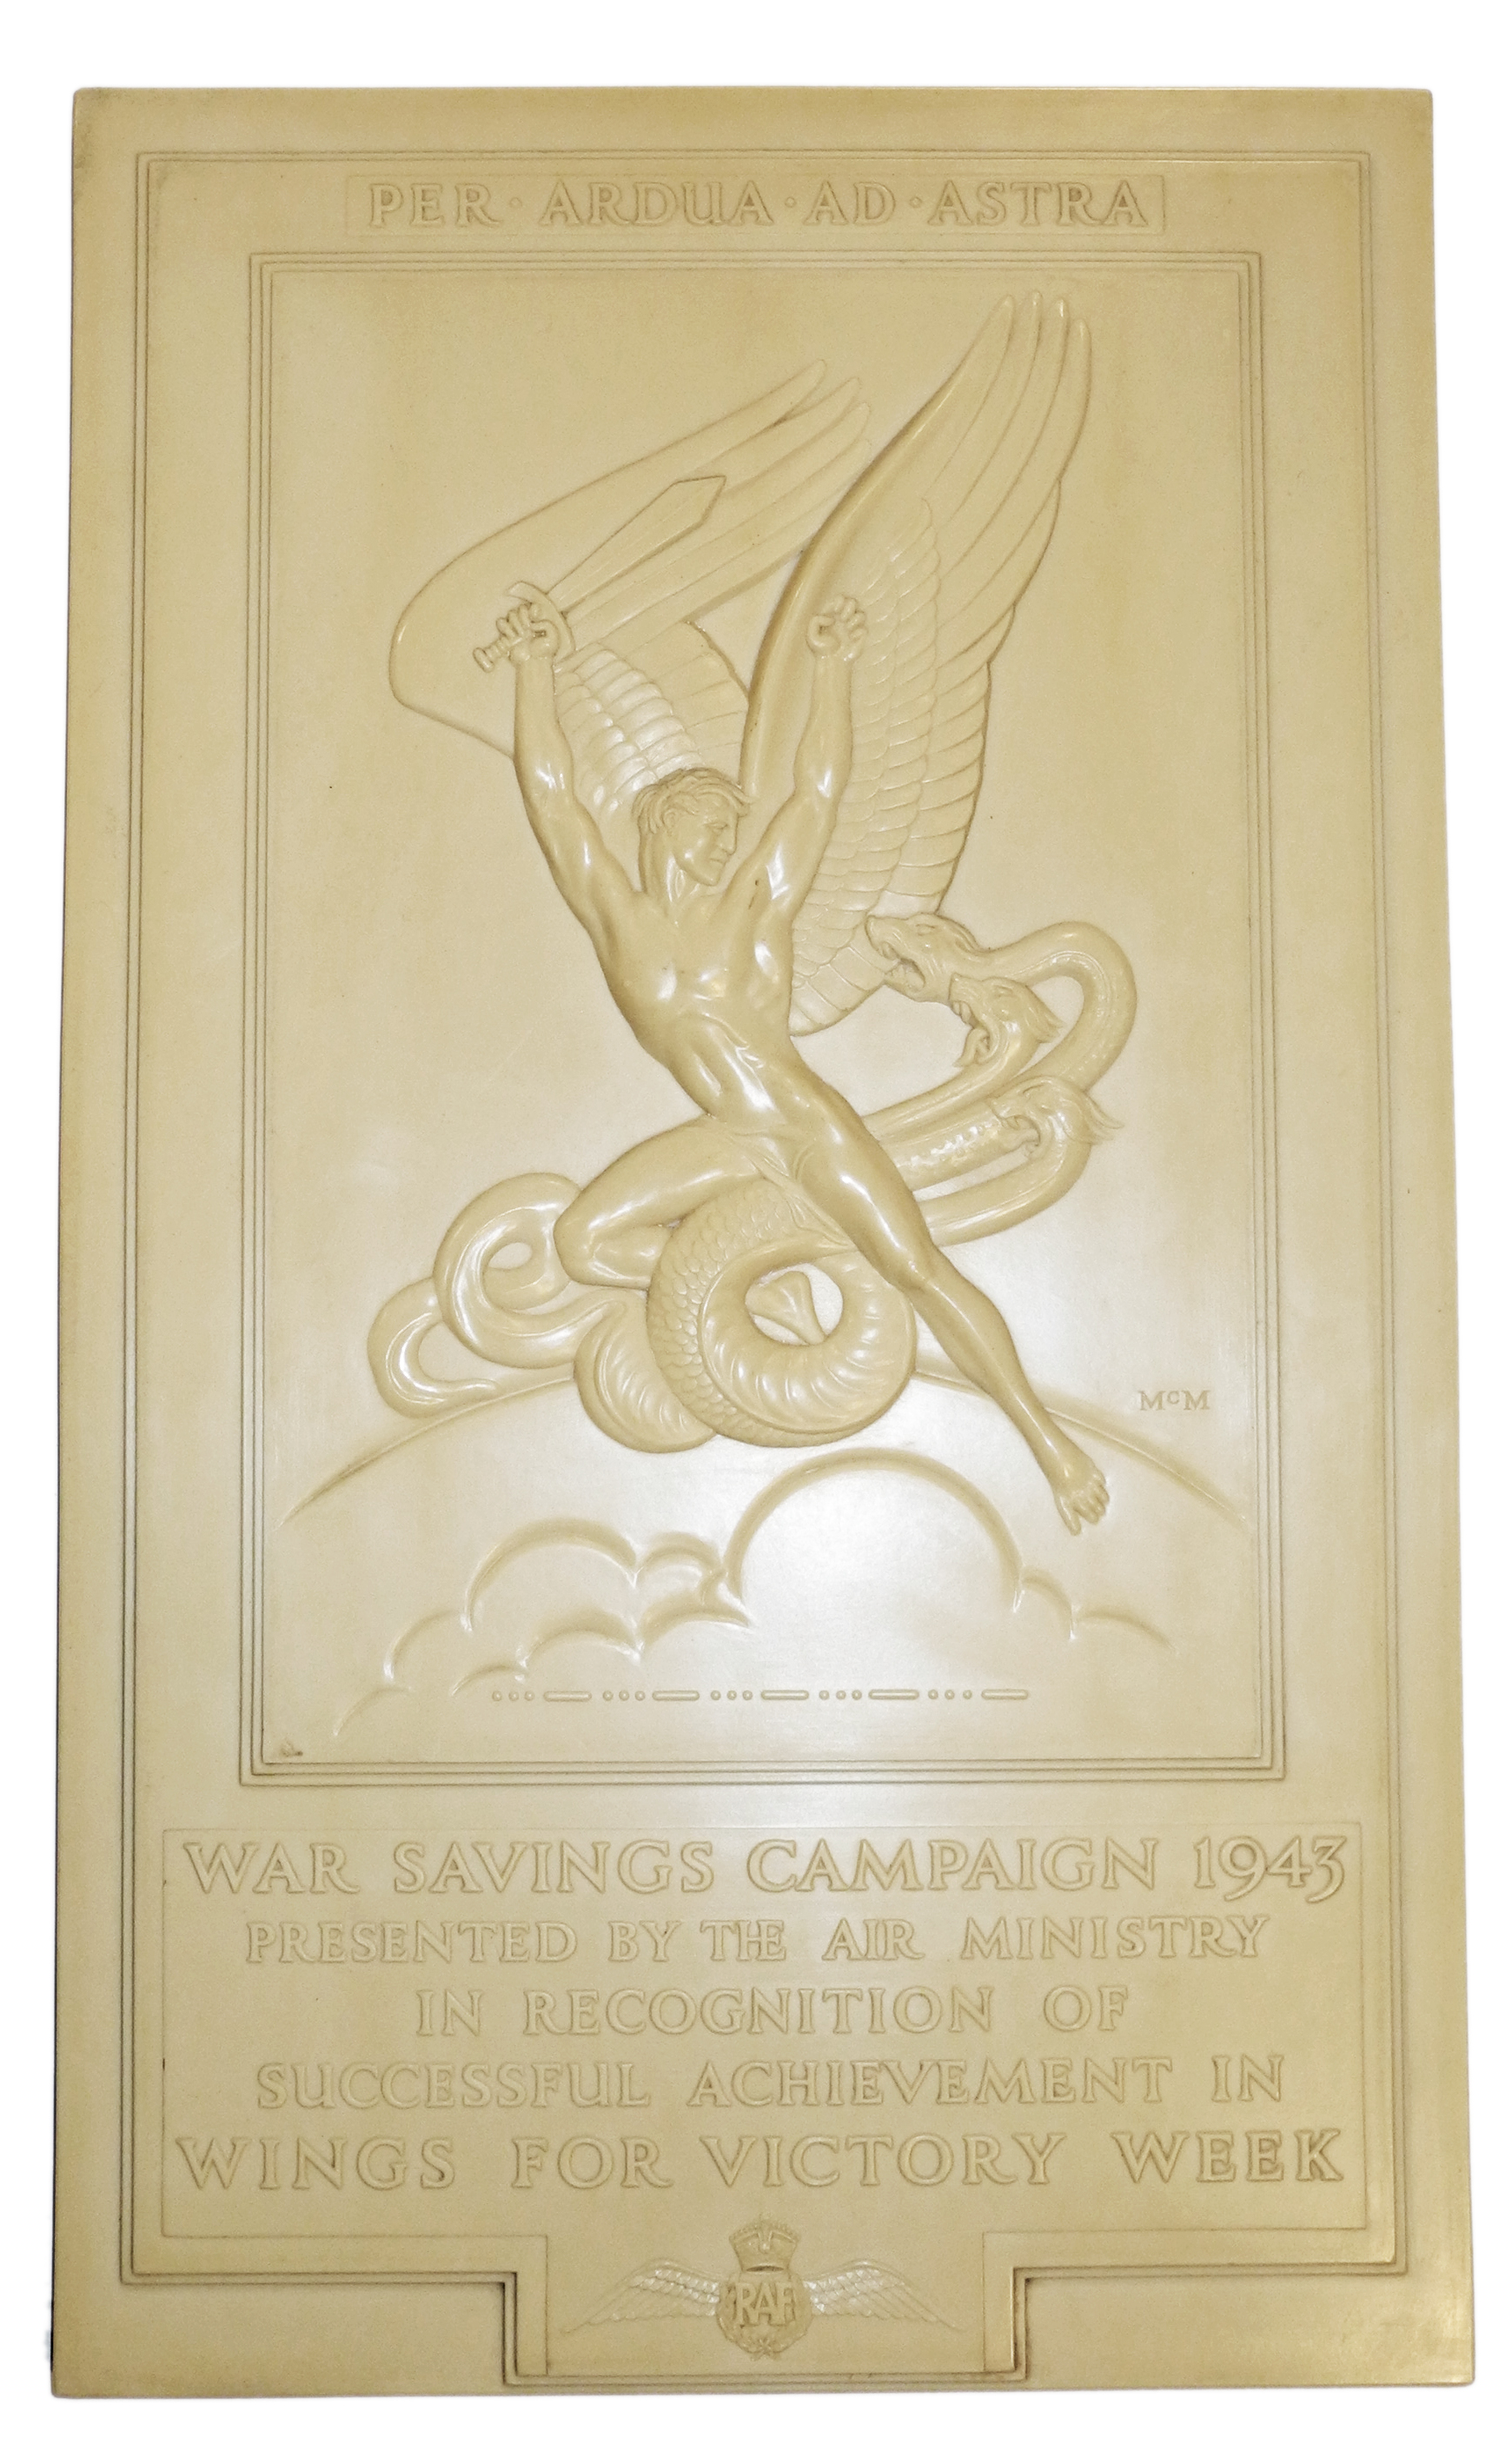 RAF War Savings Campaign Plaque 1943